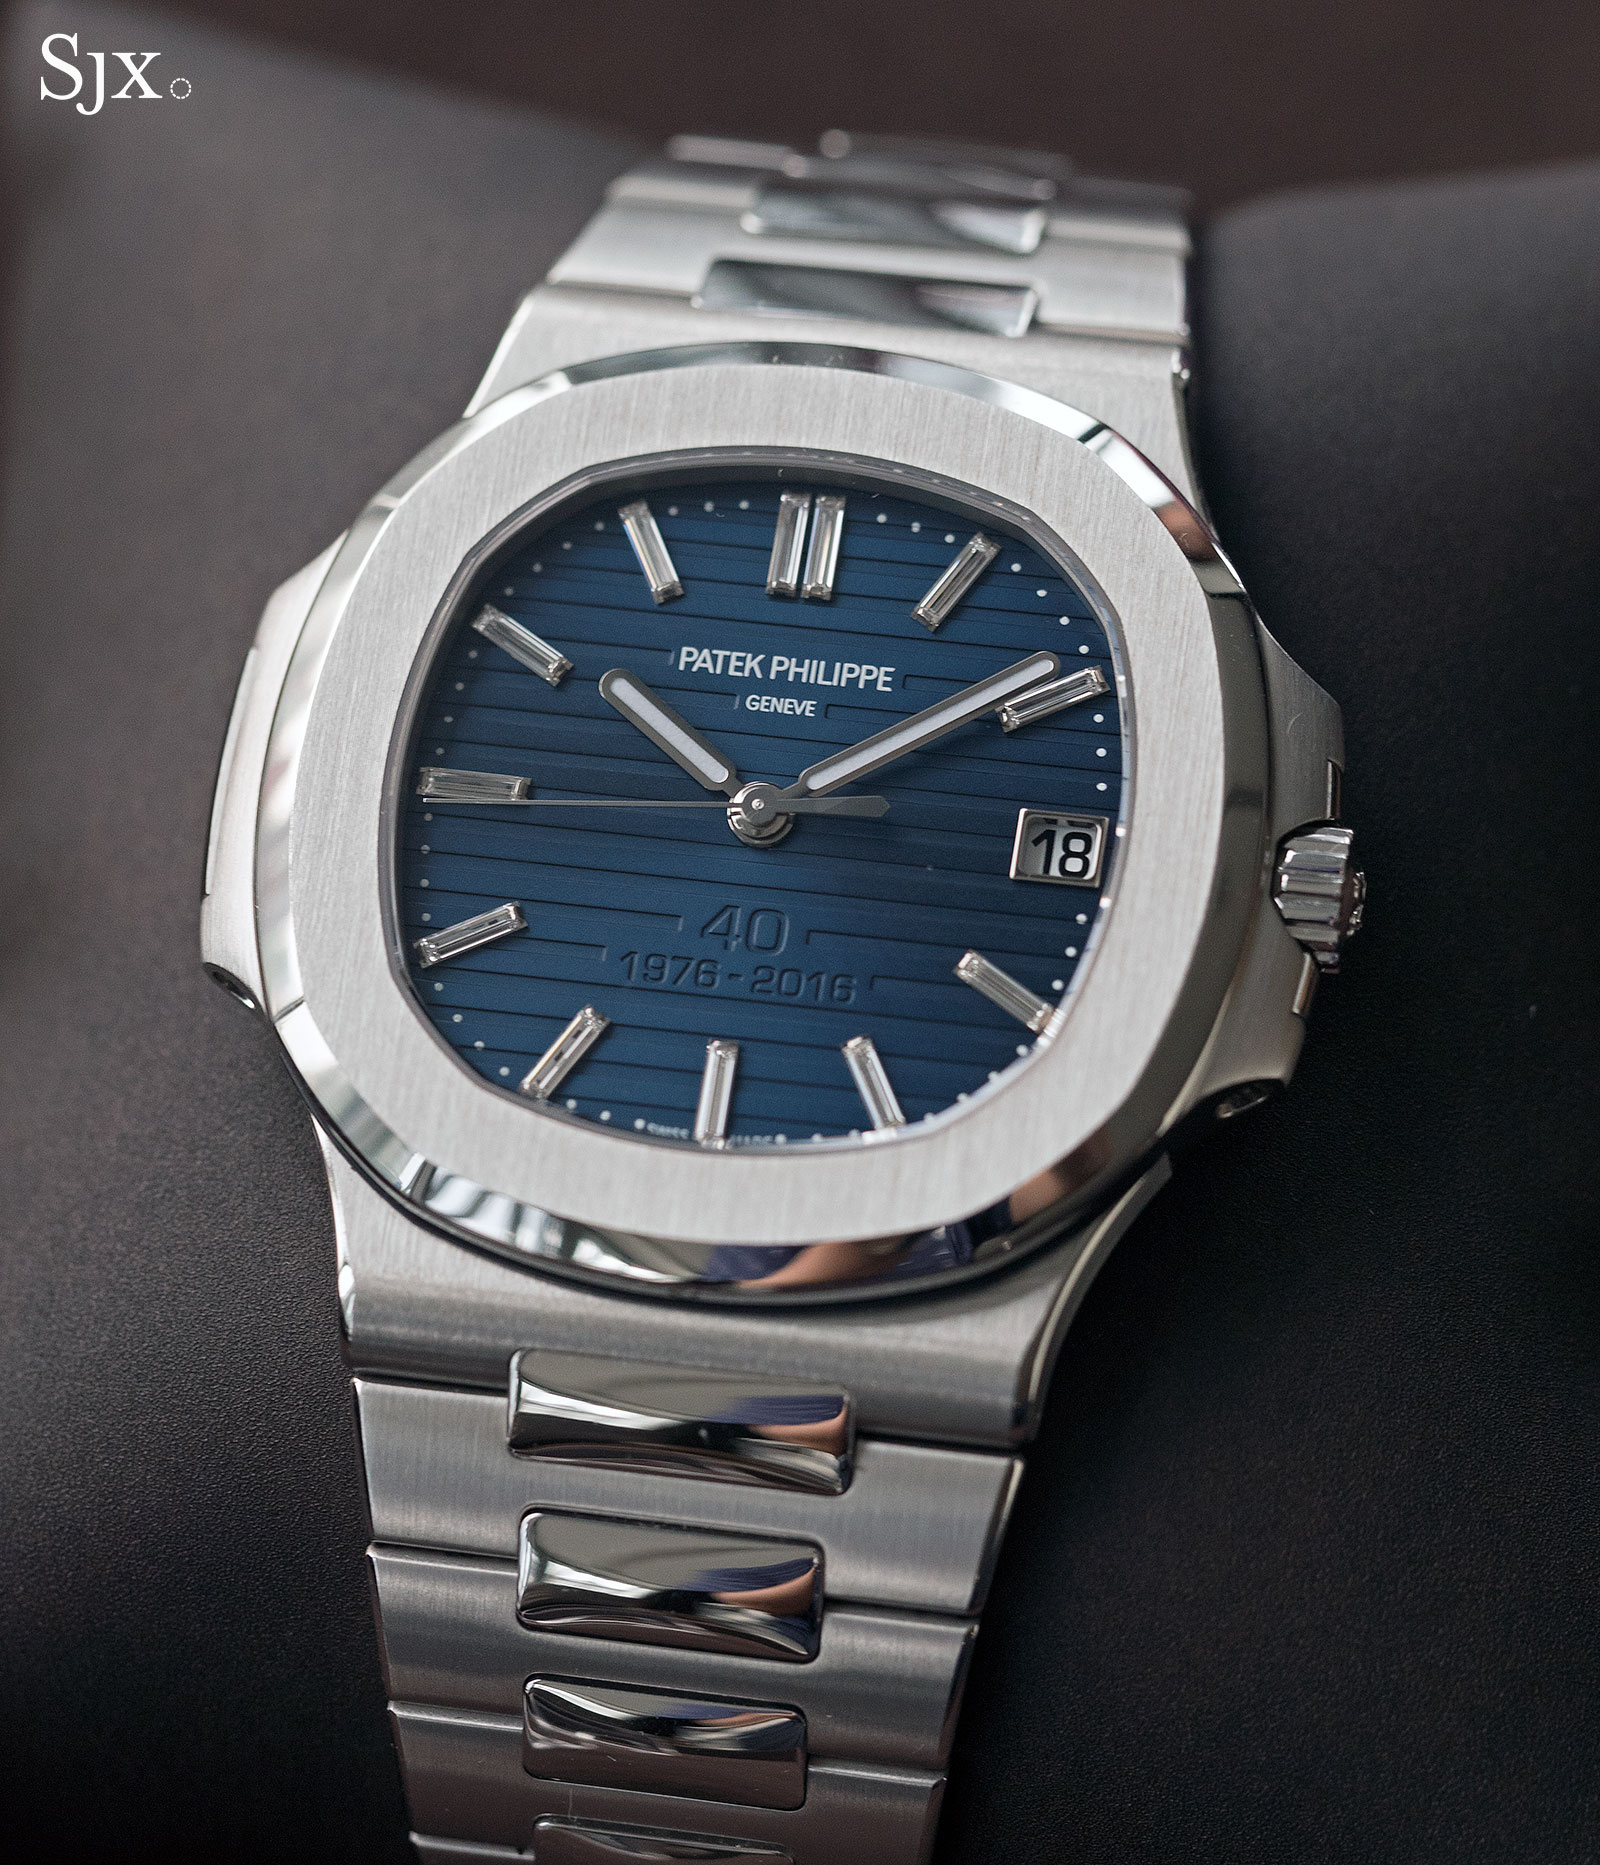 Up Close With The Patek Philippe Nautilus 40th Anniversary Limited